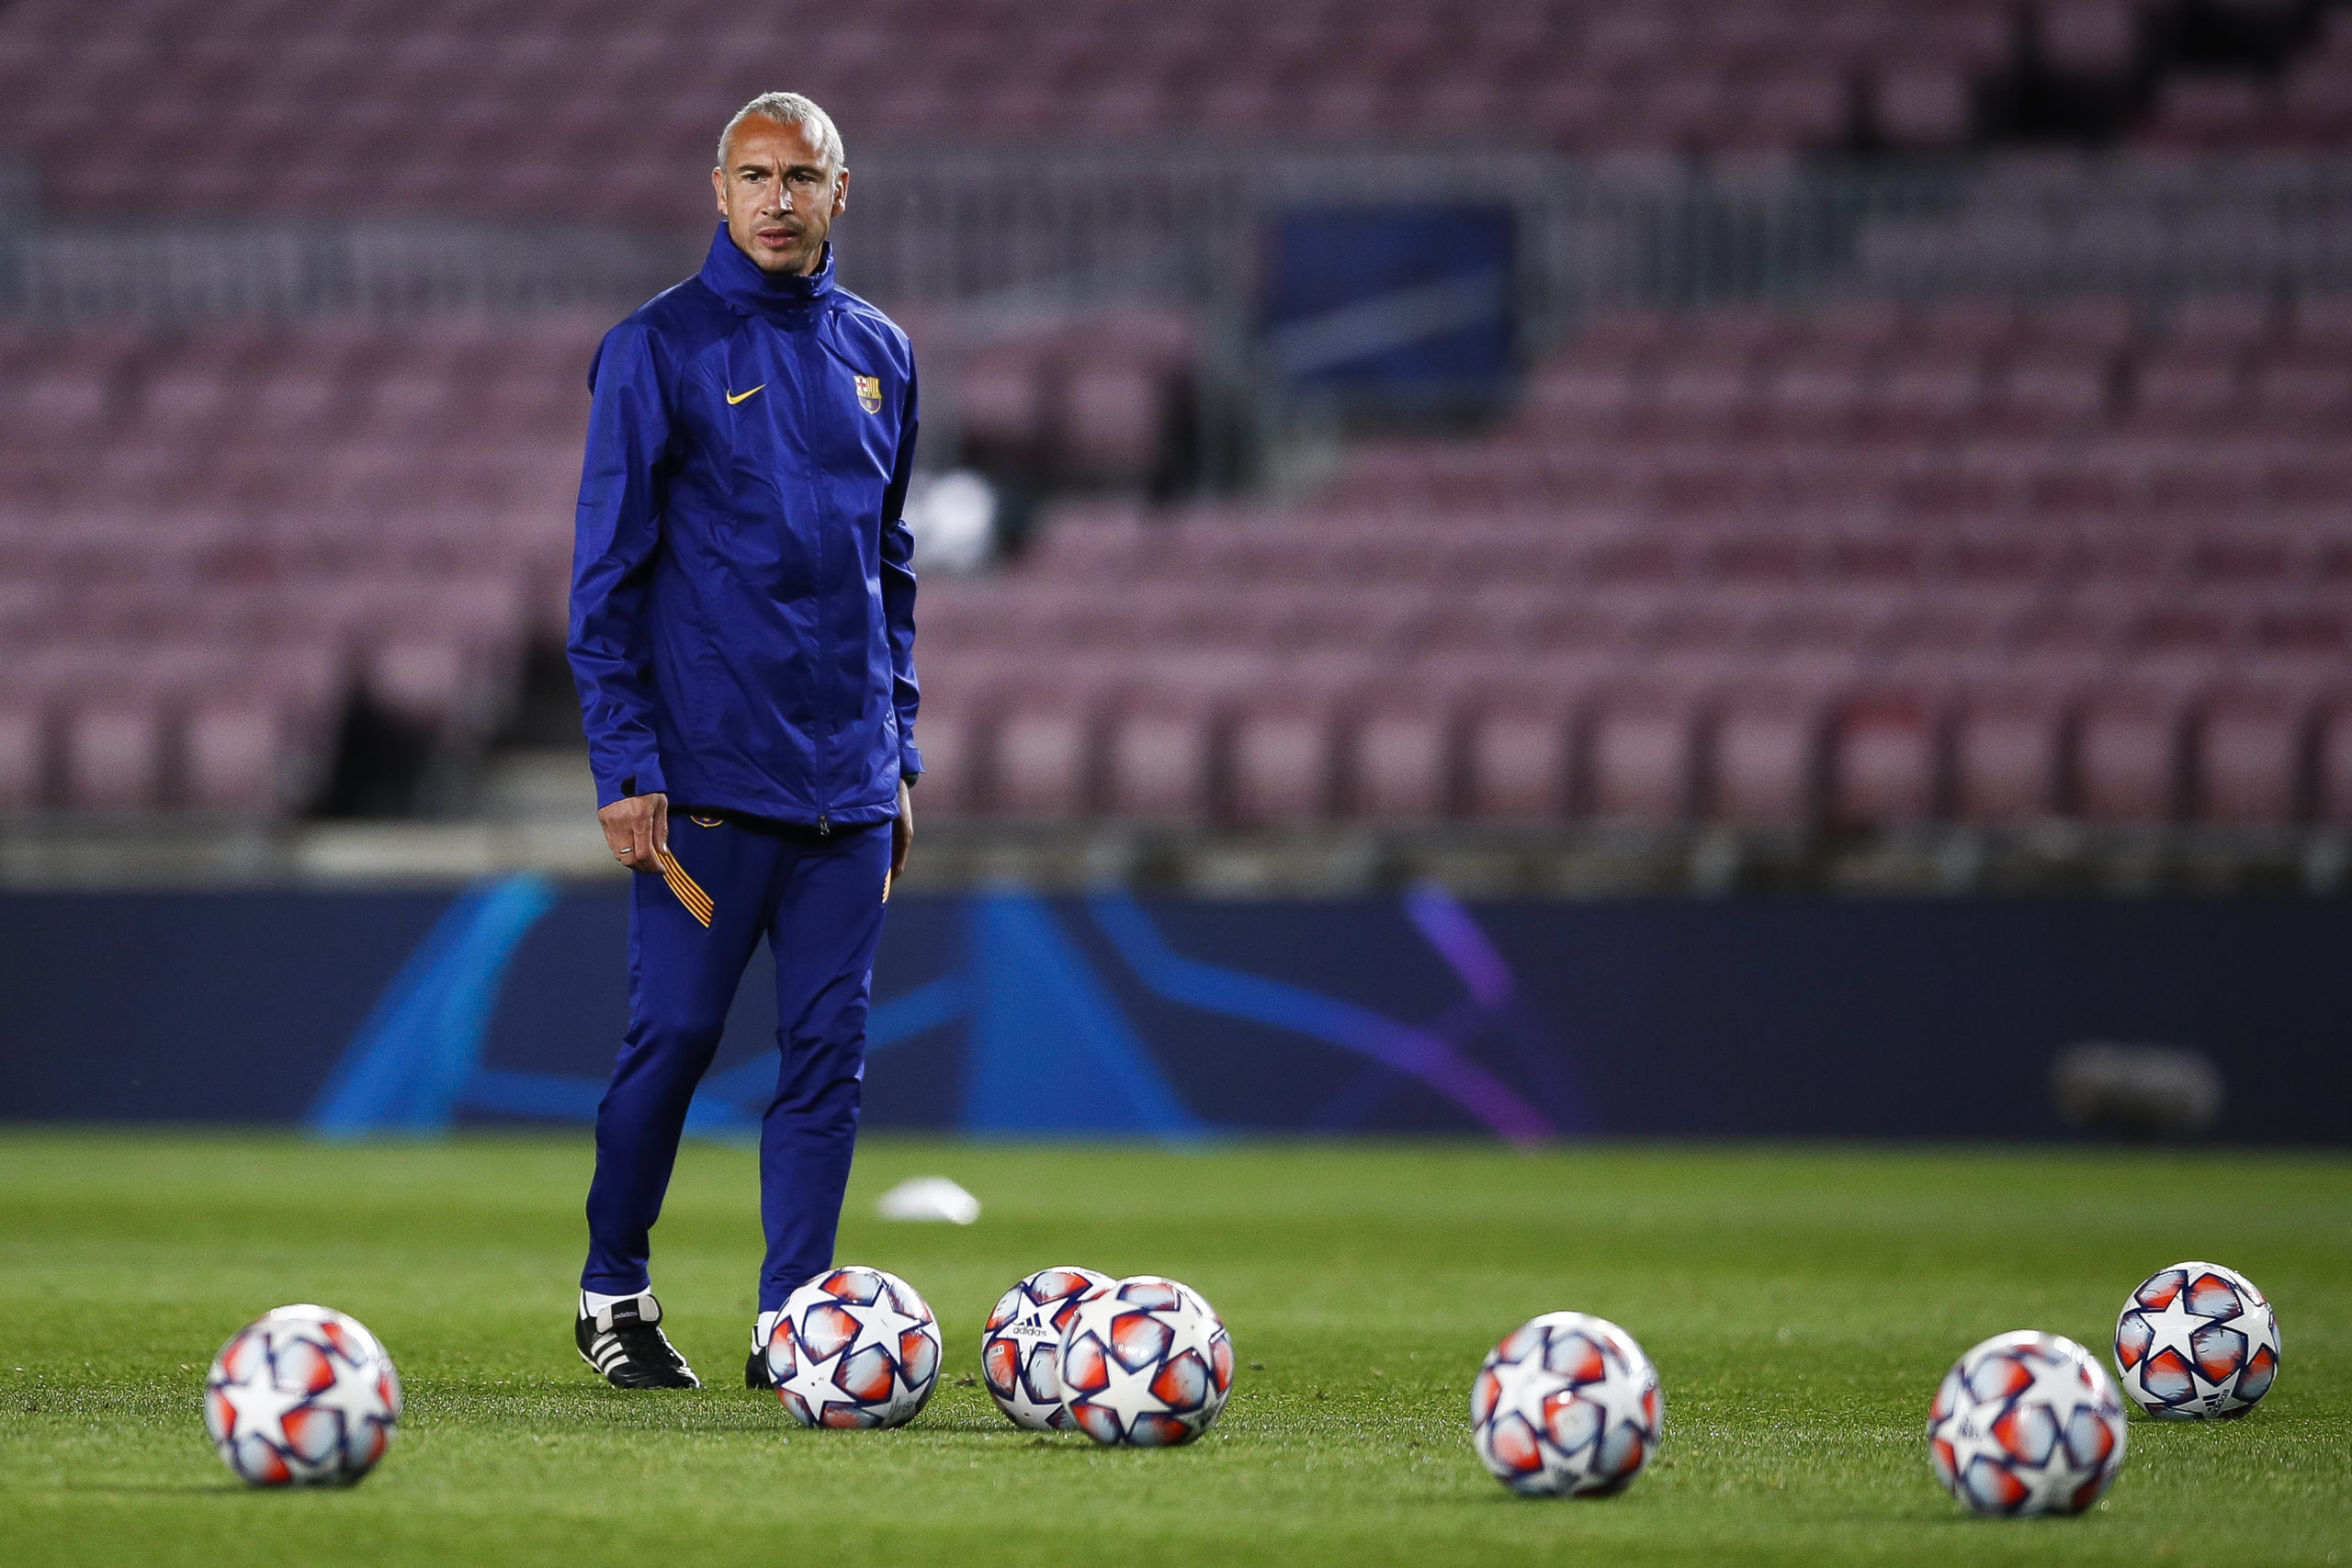 Henrik Larsson is one of two assistants working with Ronald Koeman